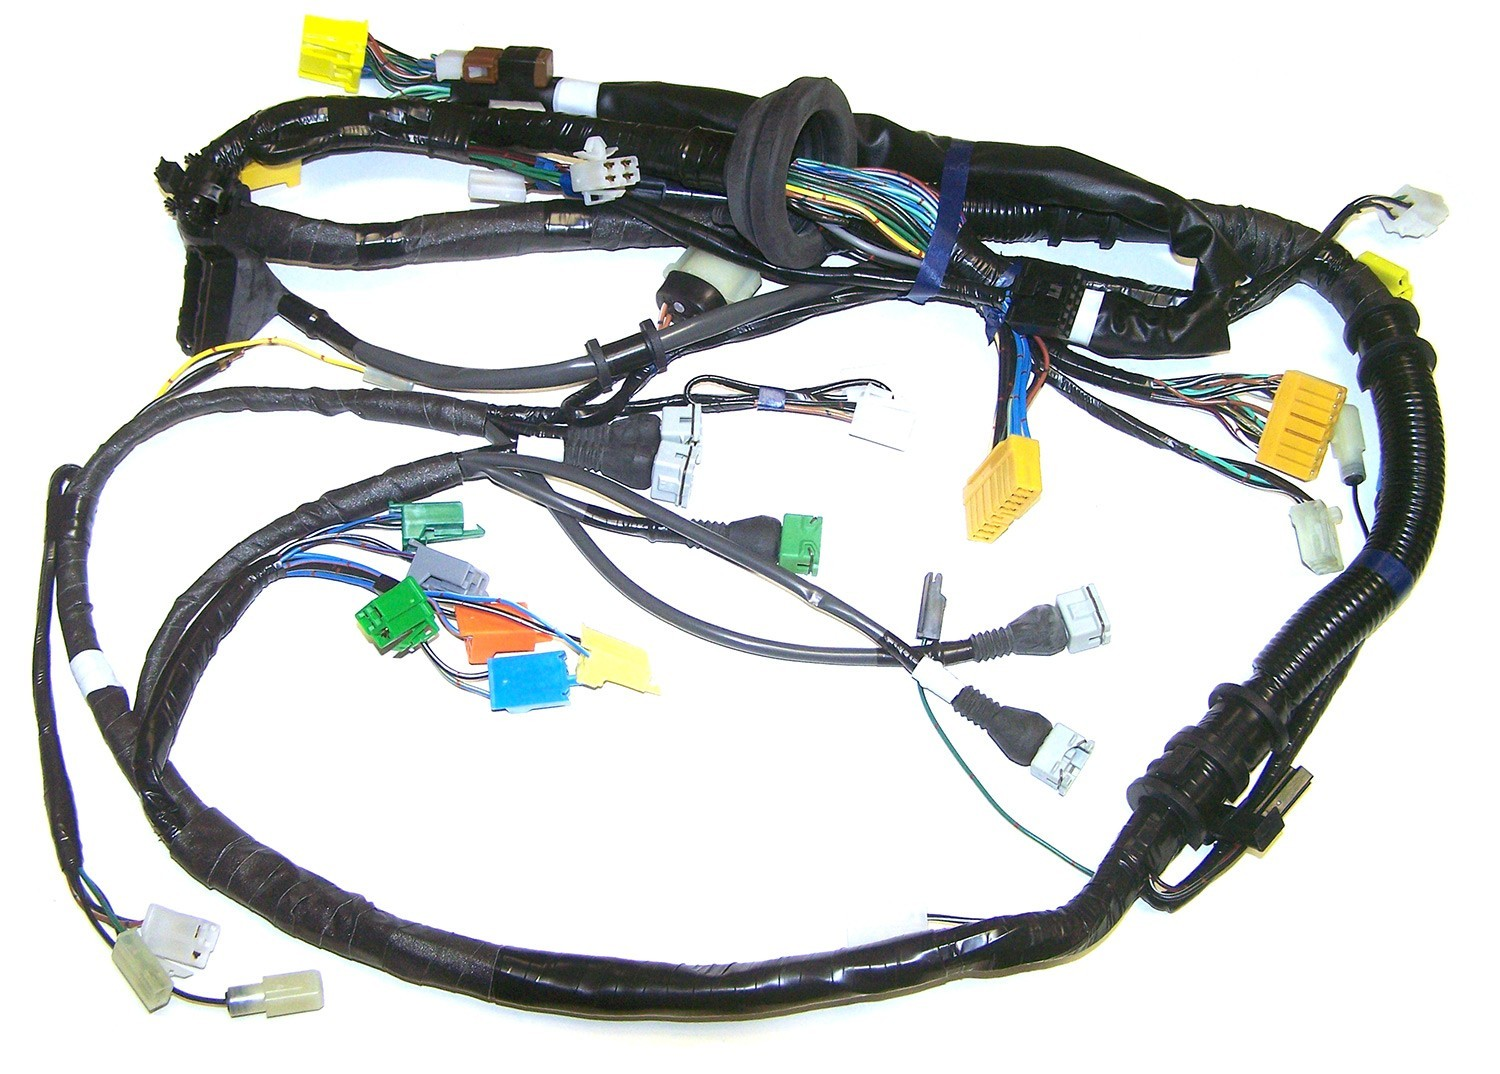 N332 18 051KDetail 87 88 turbo rx7 engine wiring harness (n332 18 051k) 13b wiring harness at bakdesigns.co